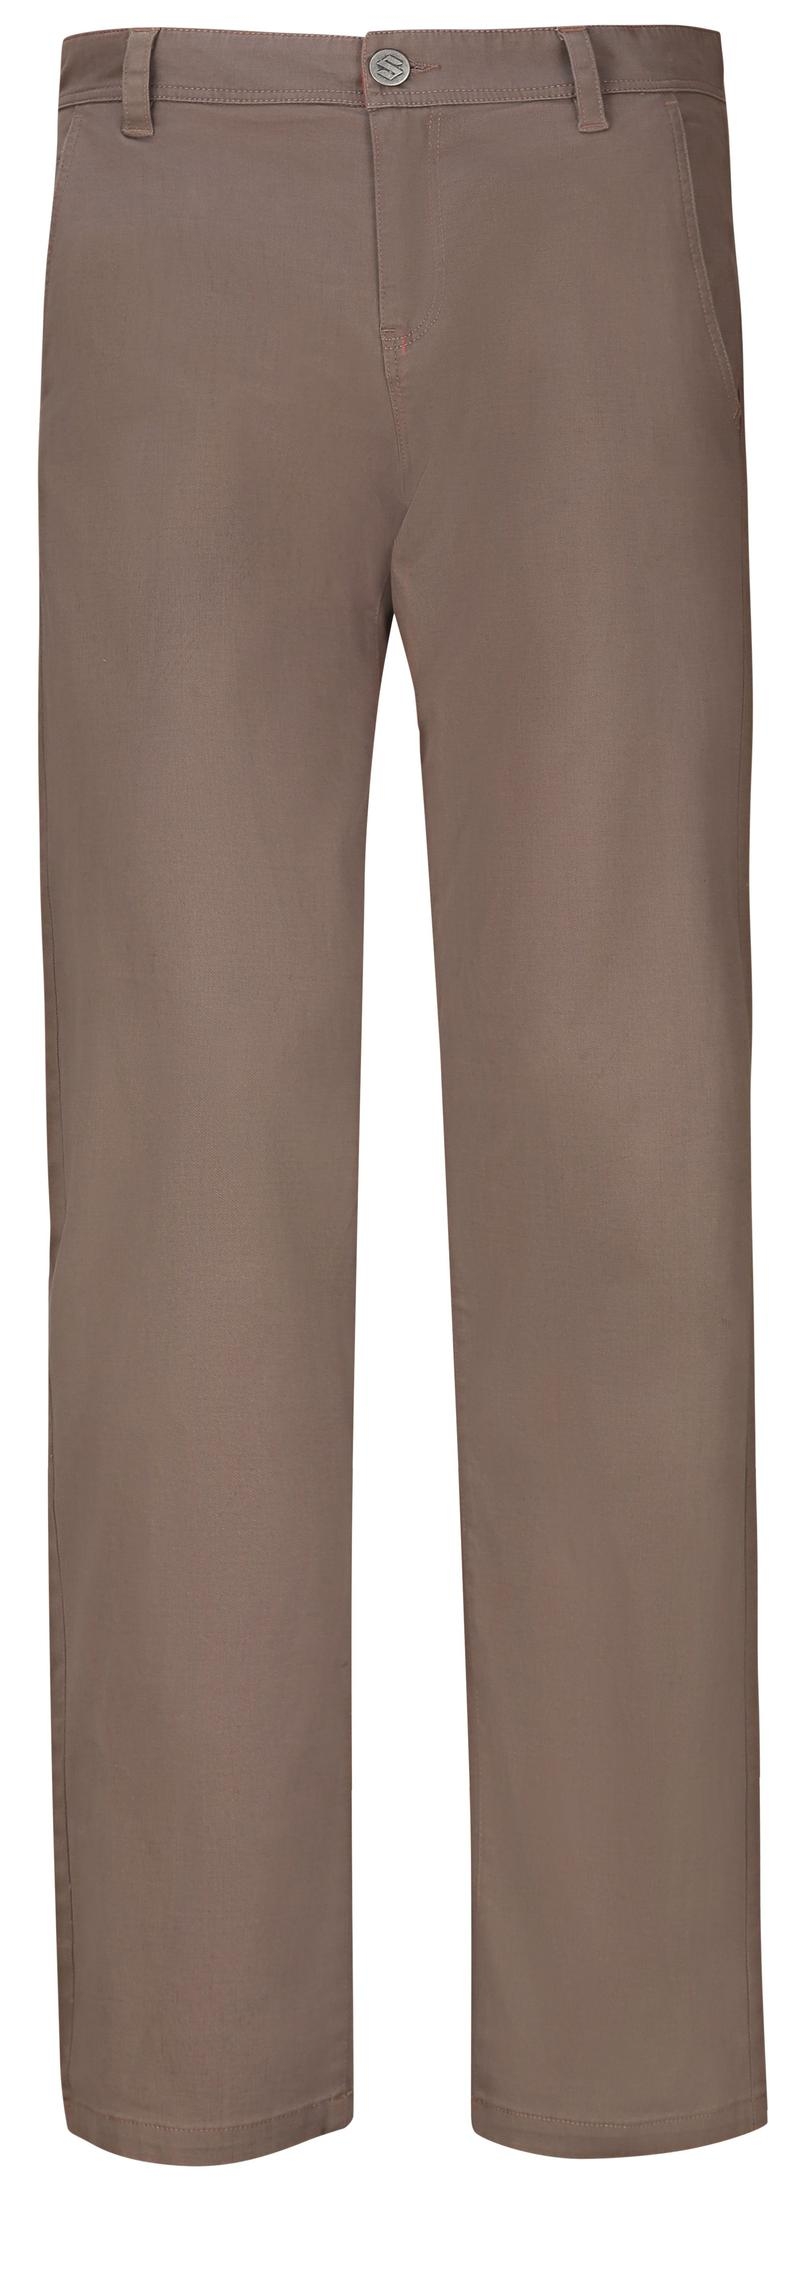 Men's Brown Chino Pants (Regular & Long)